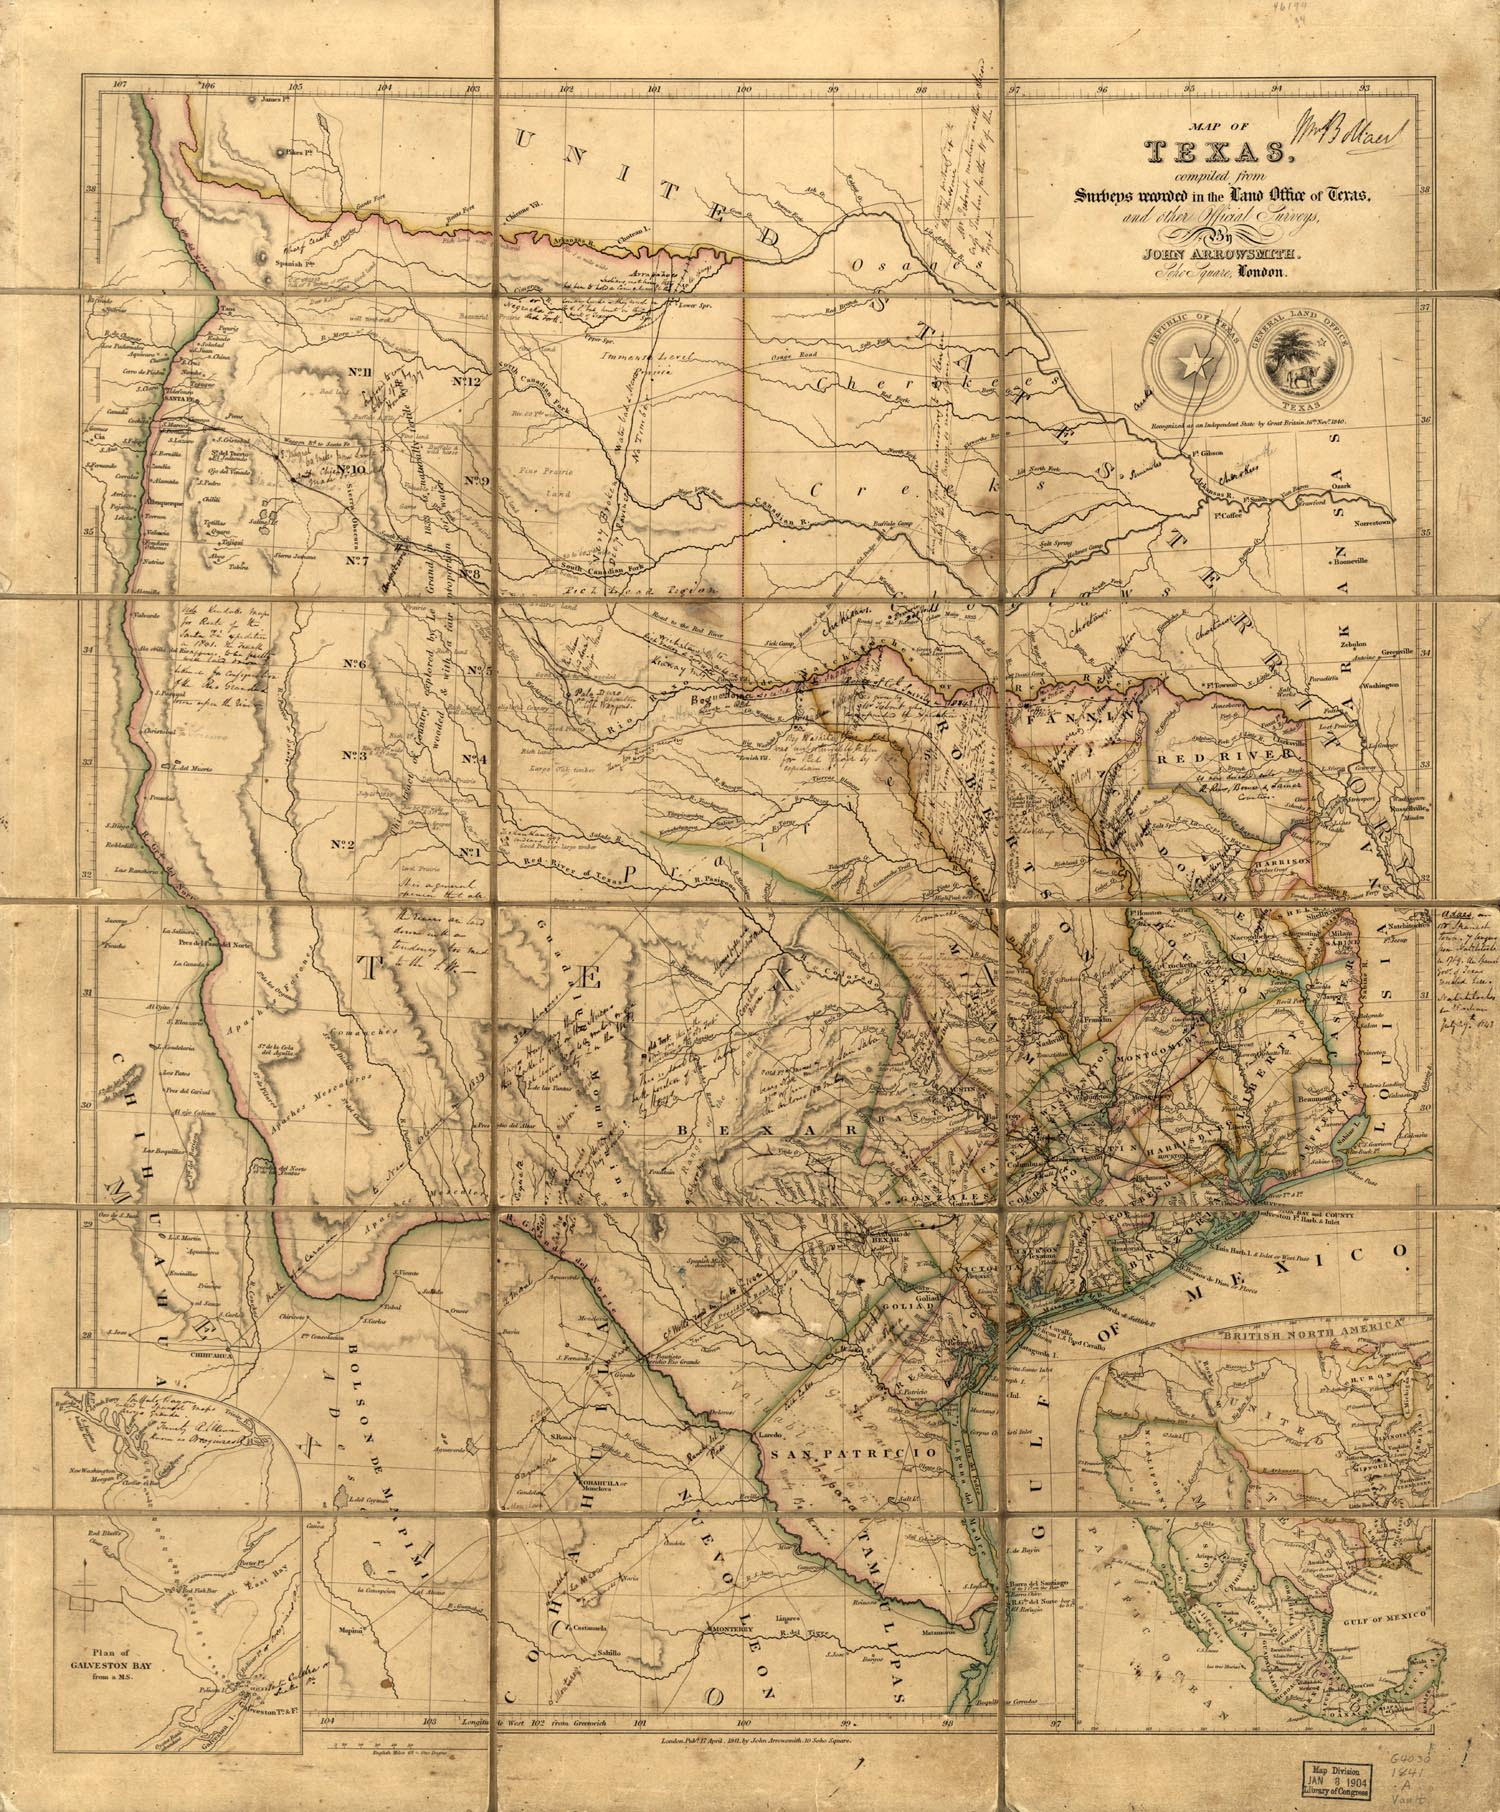 Maps Of The Republic Of Texas - Republic Of Texas Map